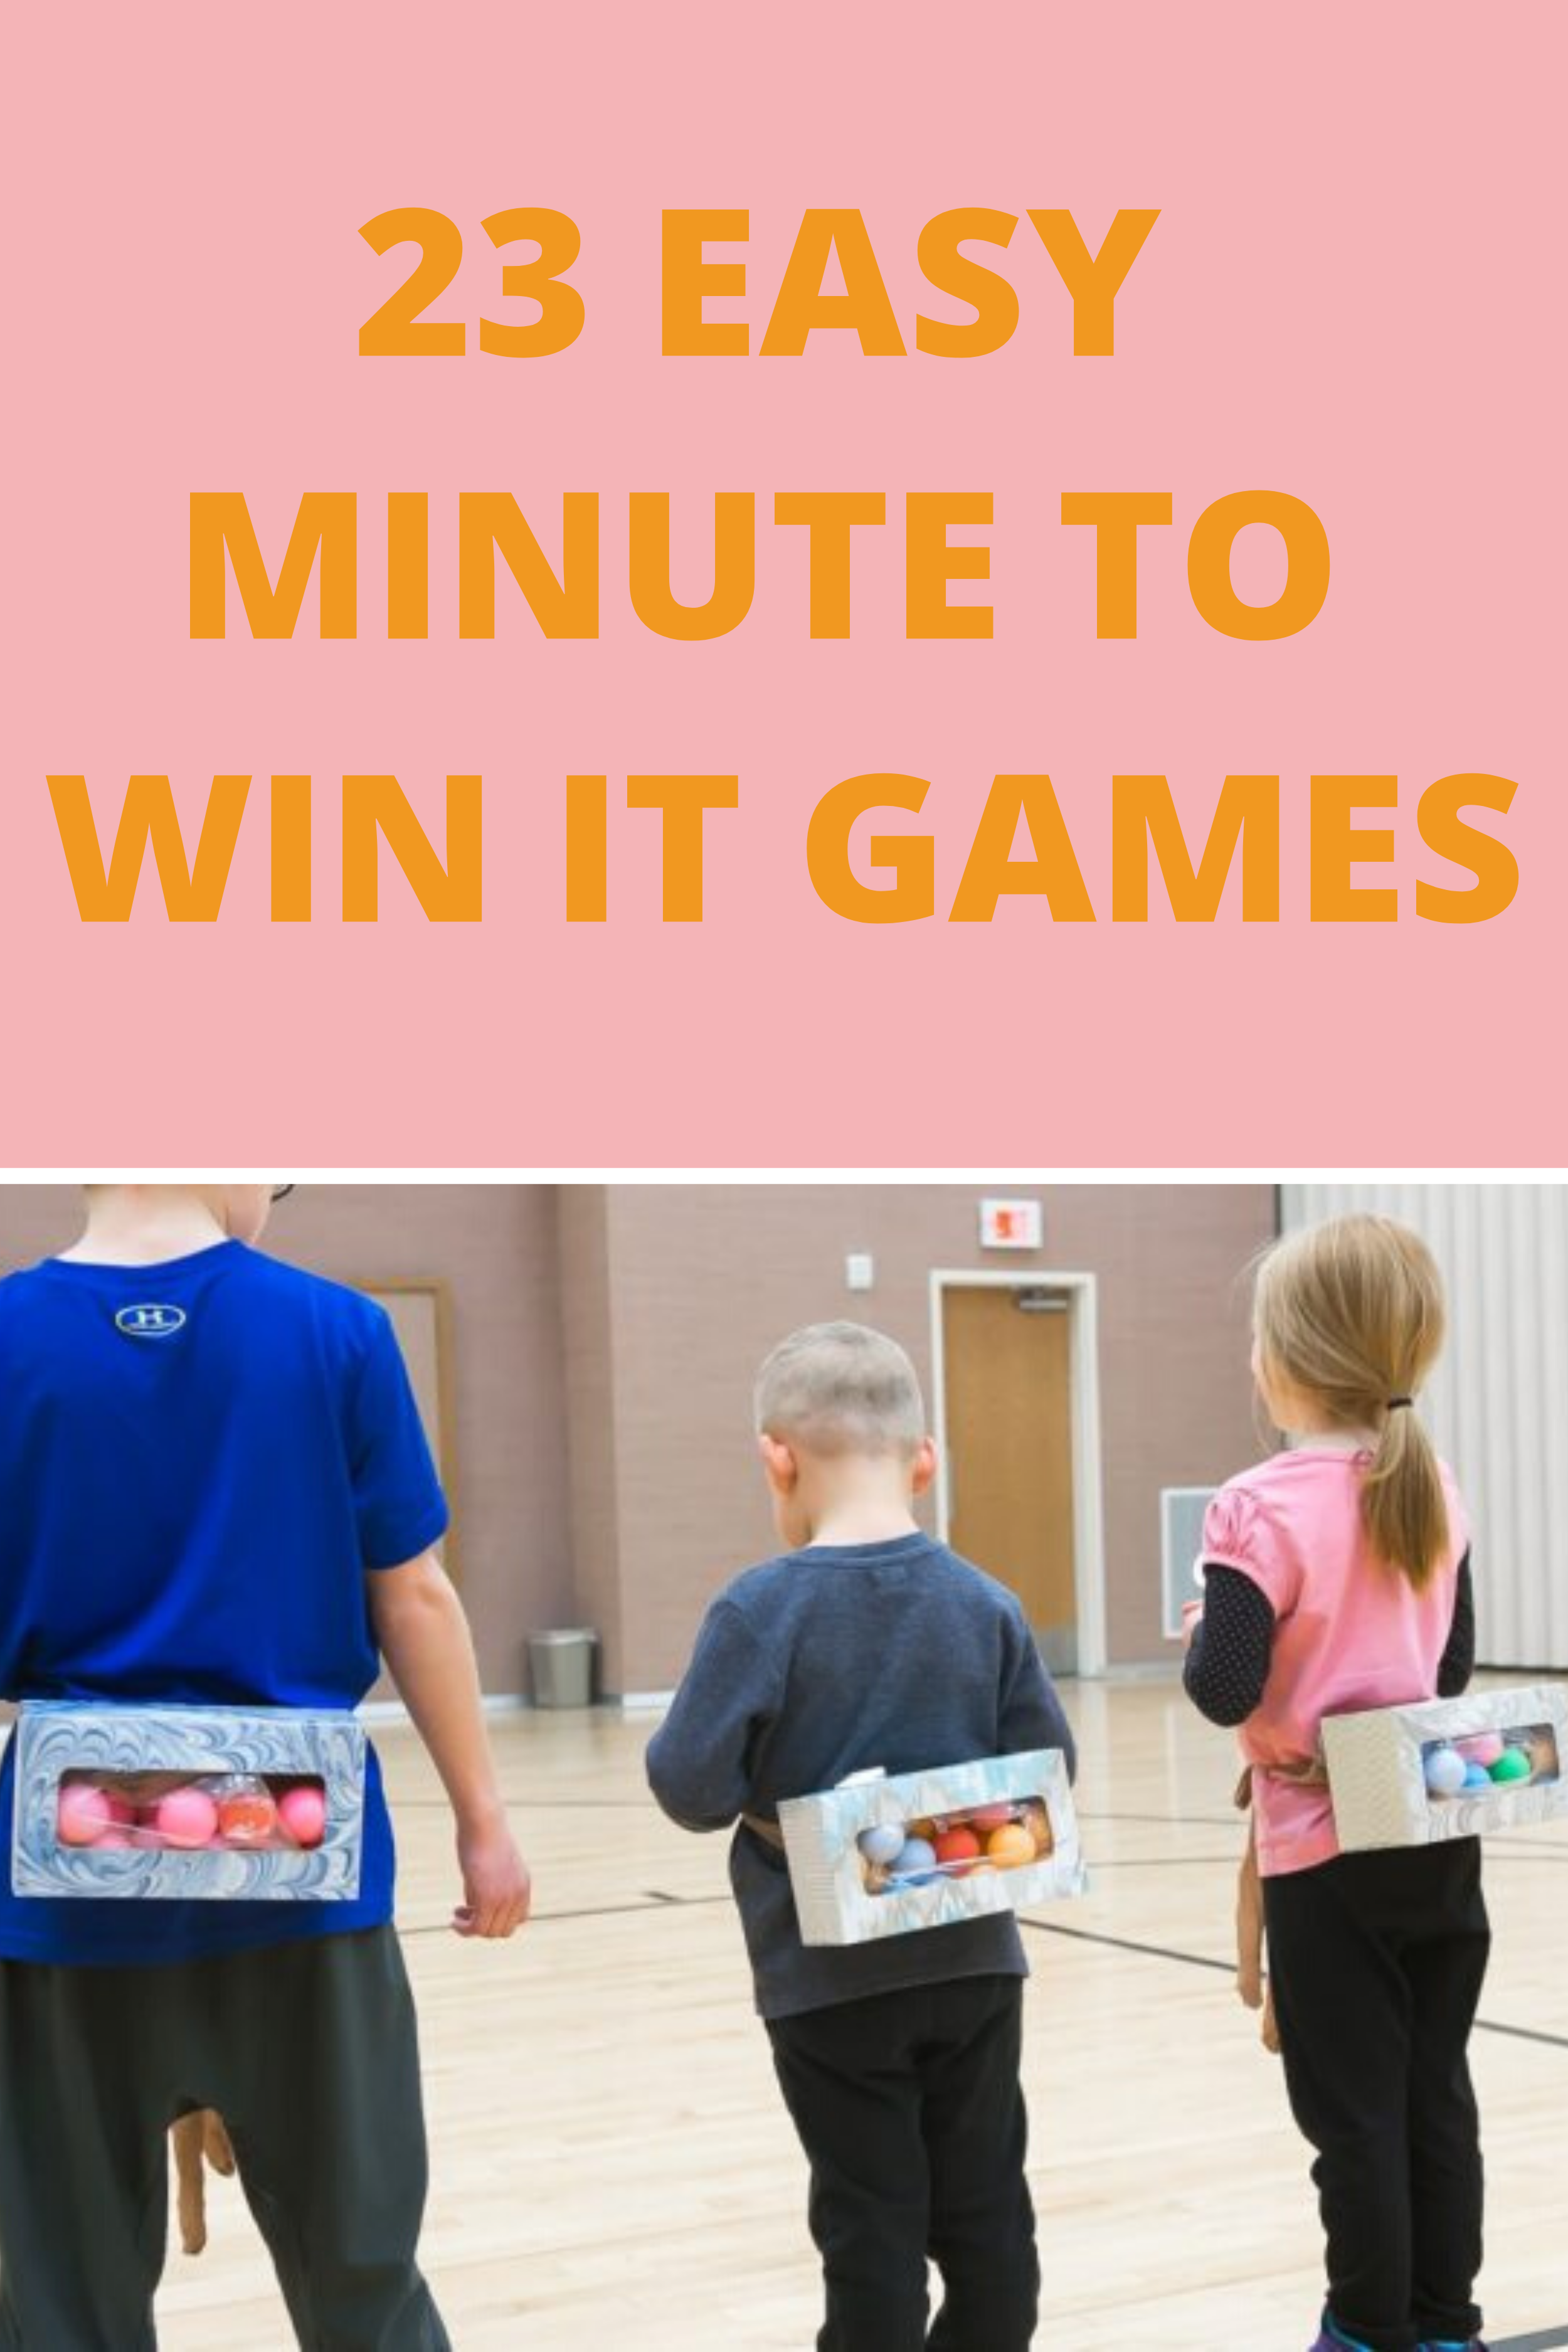 Easy Minute to Win It Games